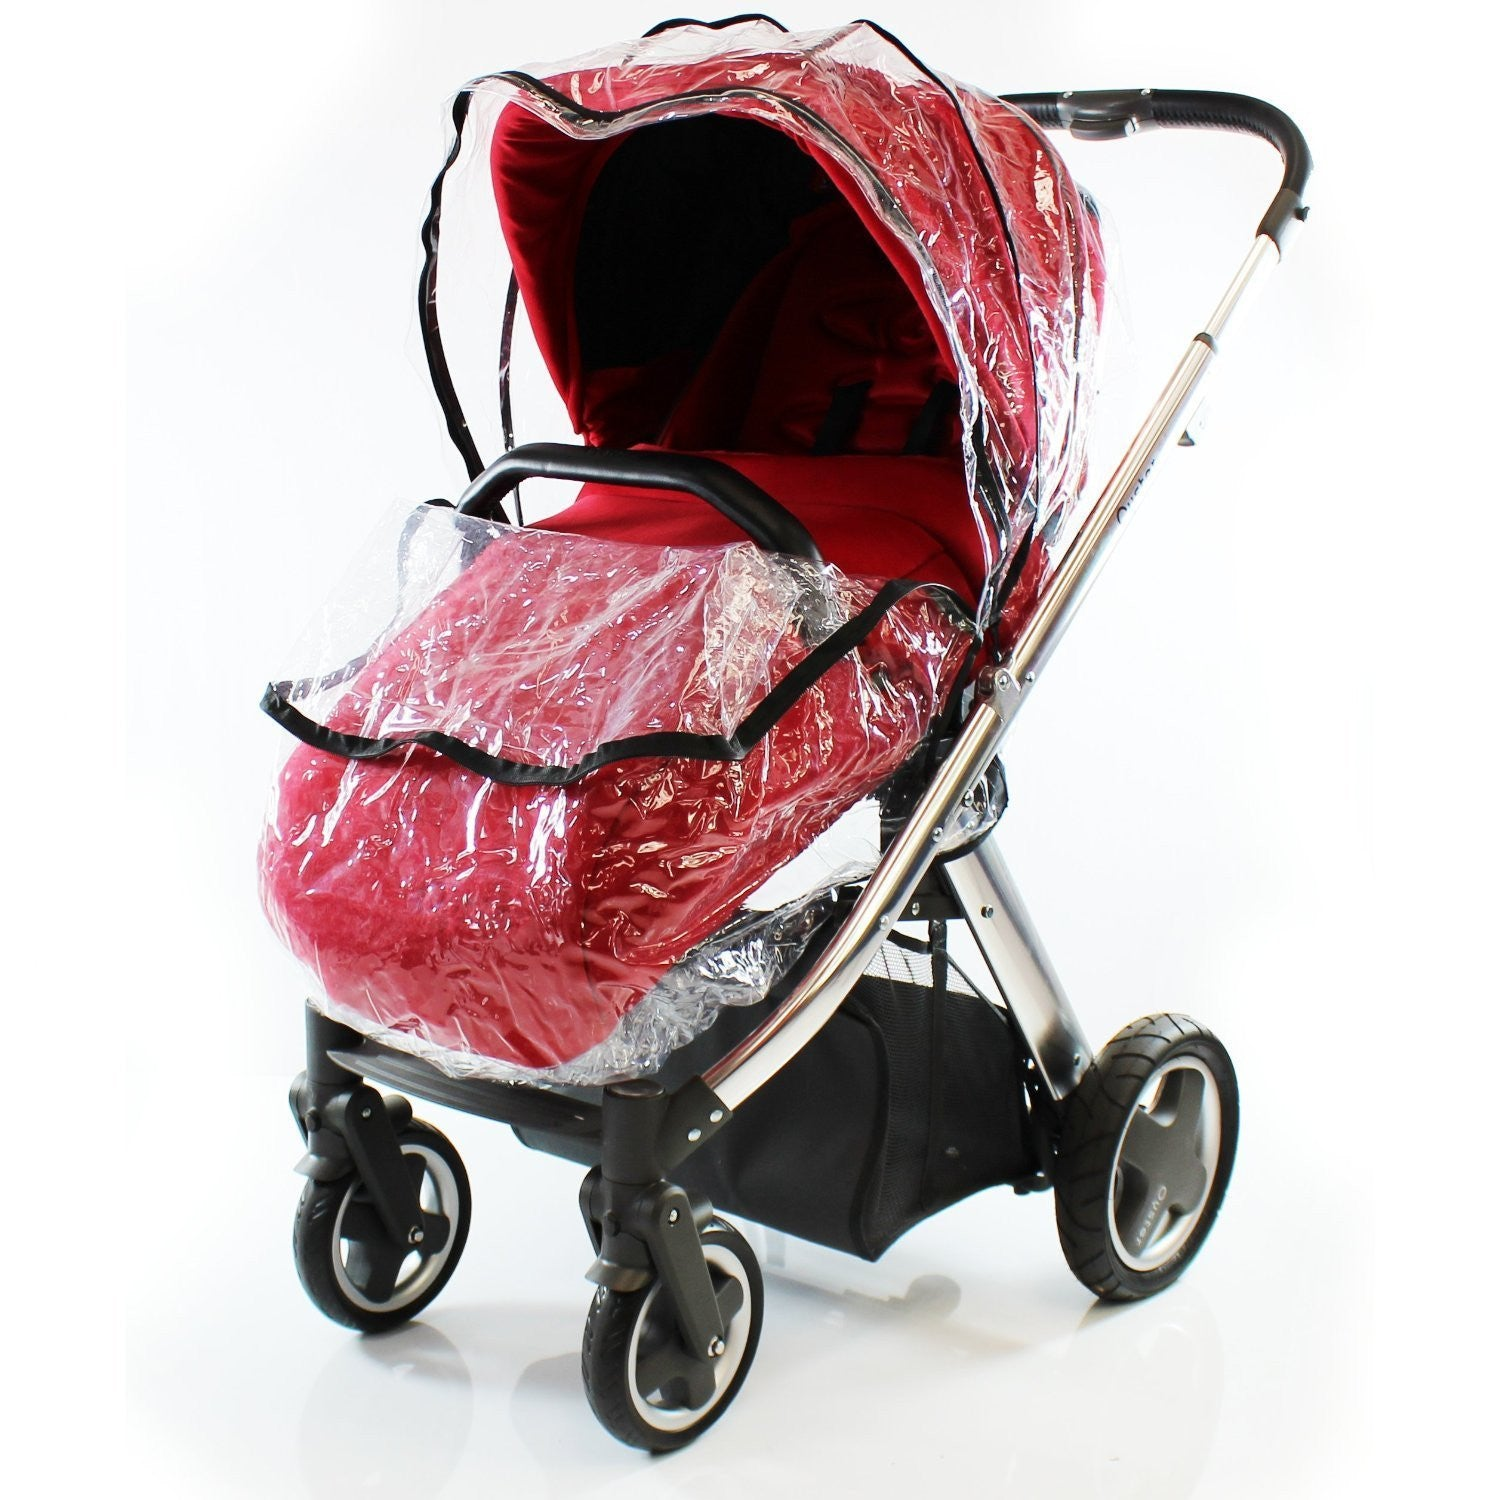 Universal Raincover Bugaboo Cameleon Frog Pushchair Ventilated Top Quality Baby Travel UK 1